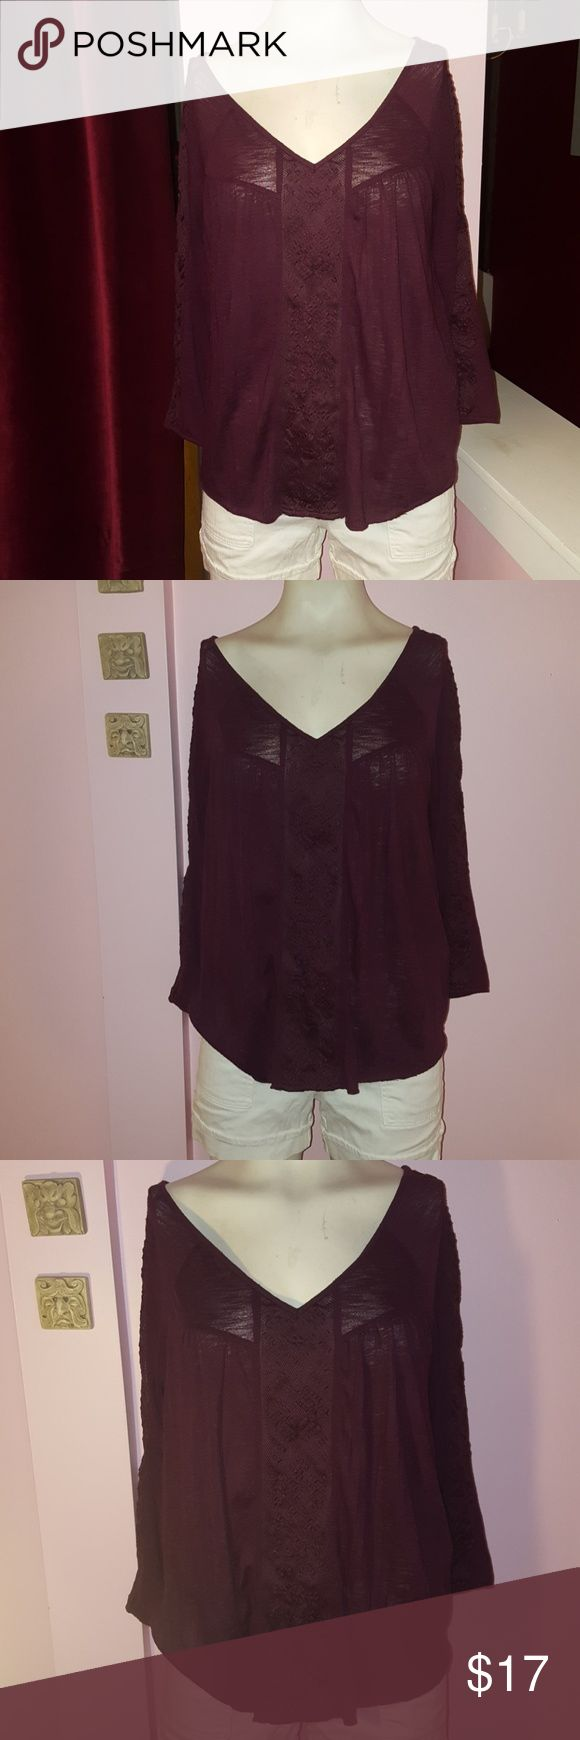 American eagle outfits purple boho top This boho top as a size medium has lace down the front and on the sides looks very cute on perfect for spring and summer Brand American Eagle American Eagle Outfitters Tops Tees - Long Sleeve